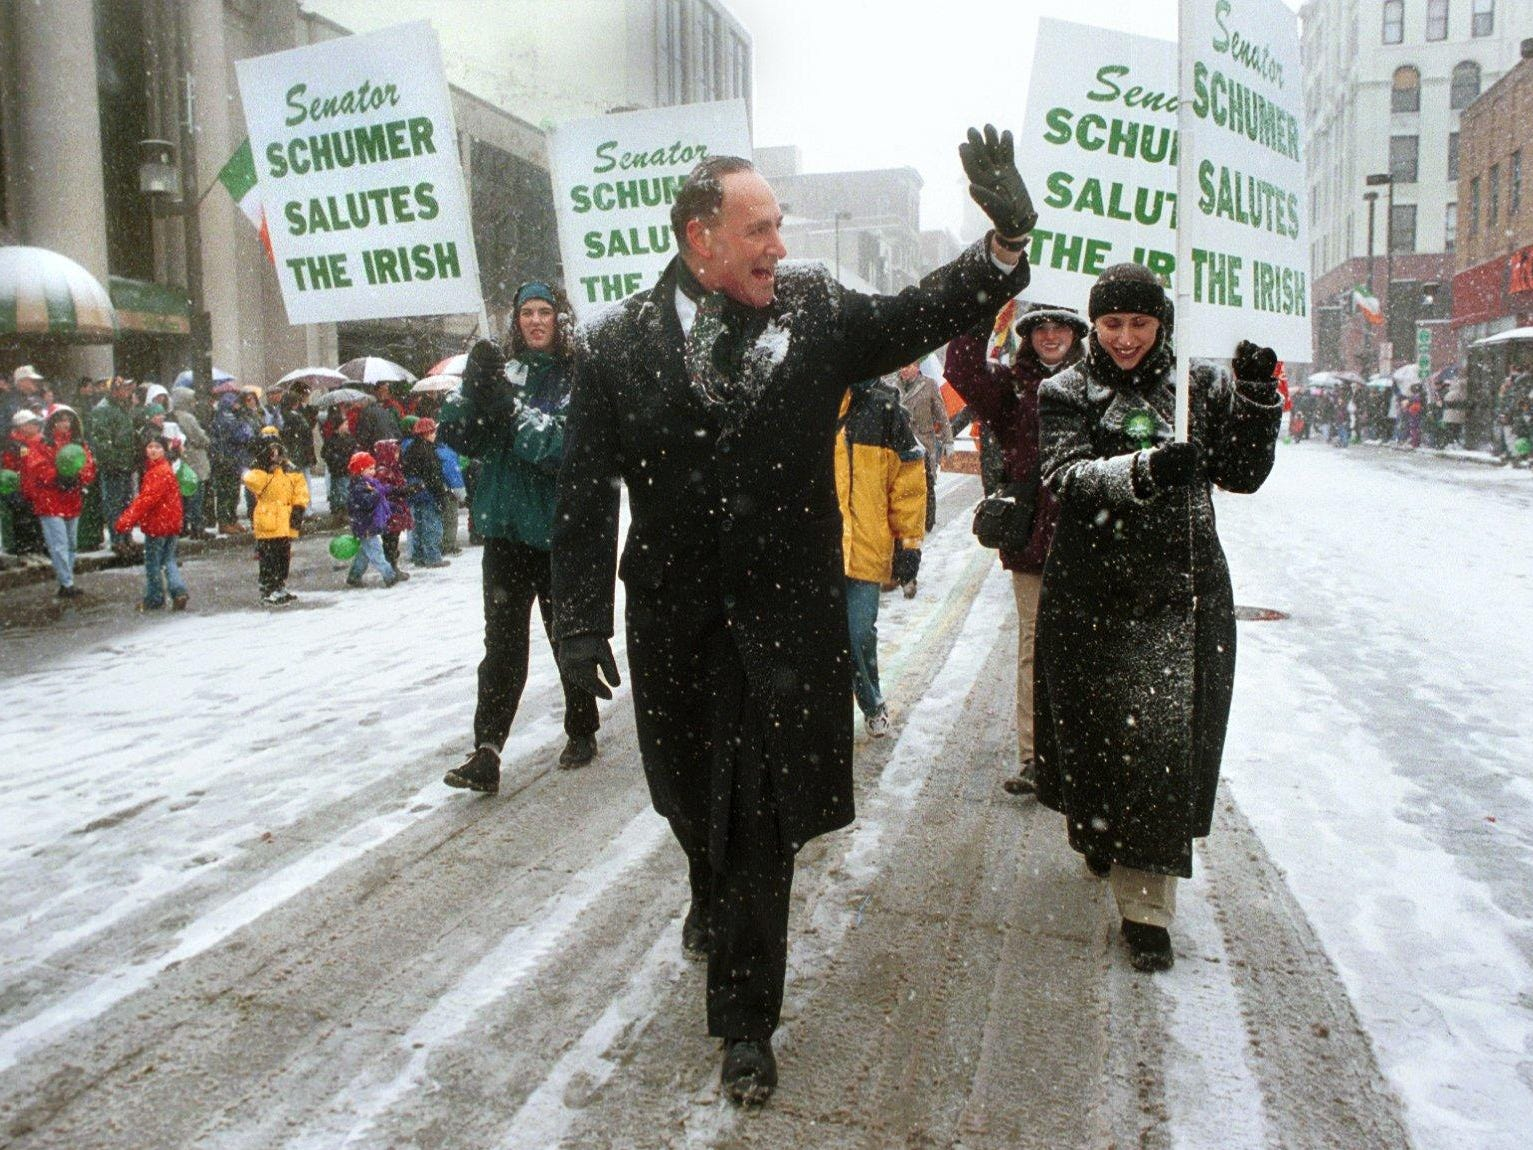 1999: United States Senator Charles Schumer, Democrat from New York, makes his way down a snow covered Court Street in downtown Binghamton, N.Y. Saturday afternoon during the St. Patricks Day Parade.